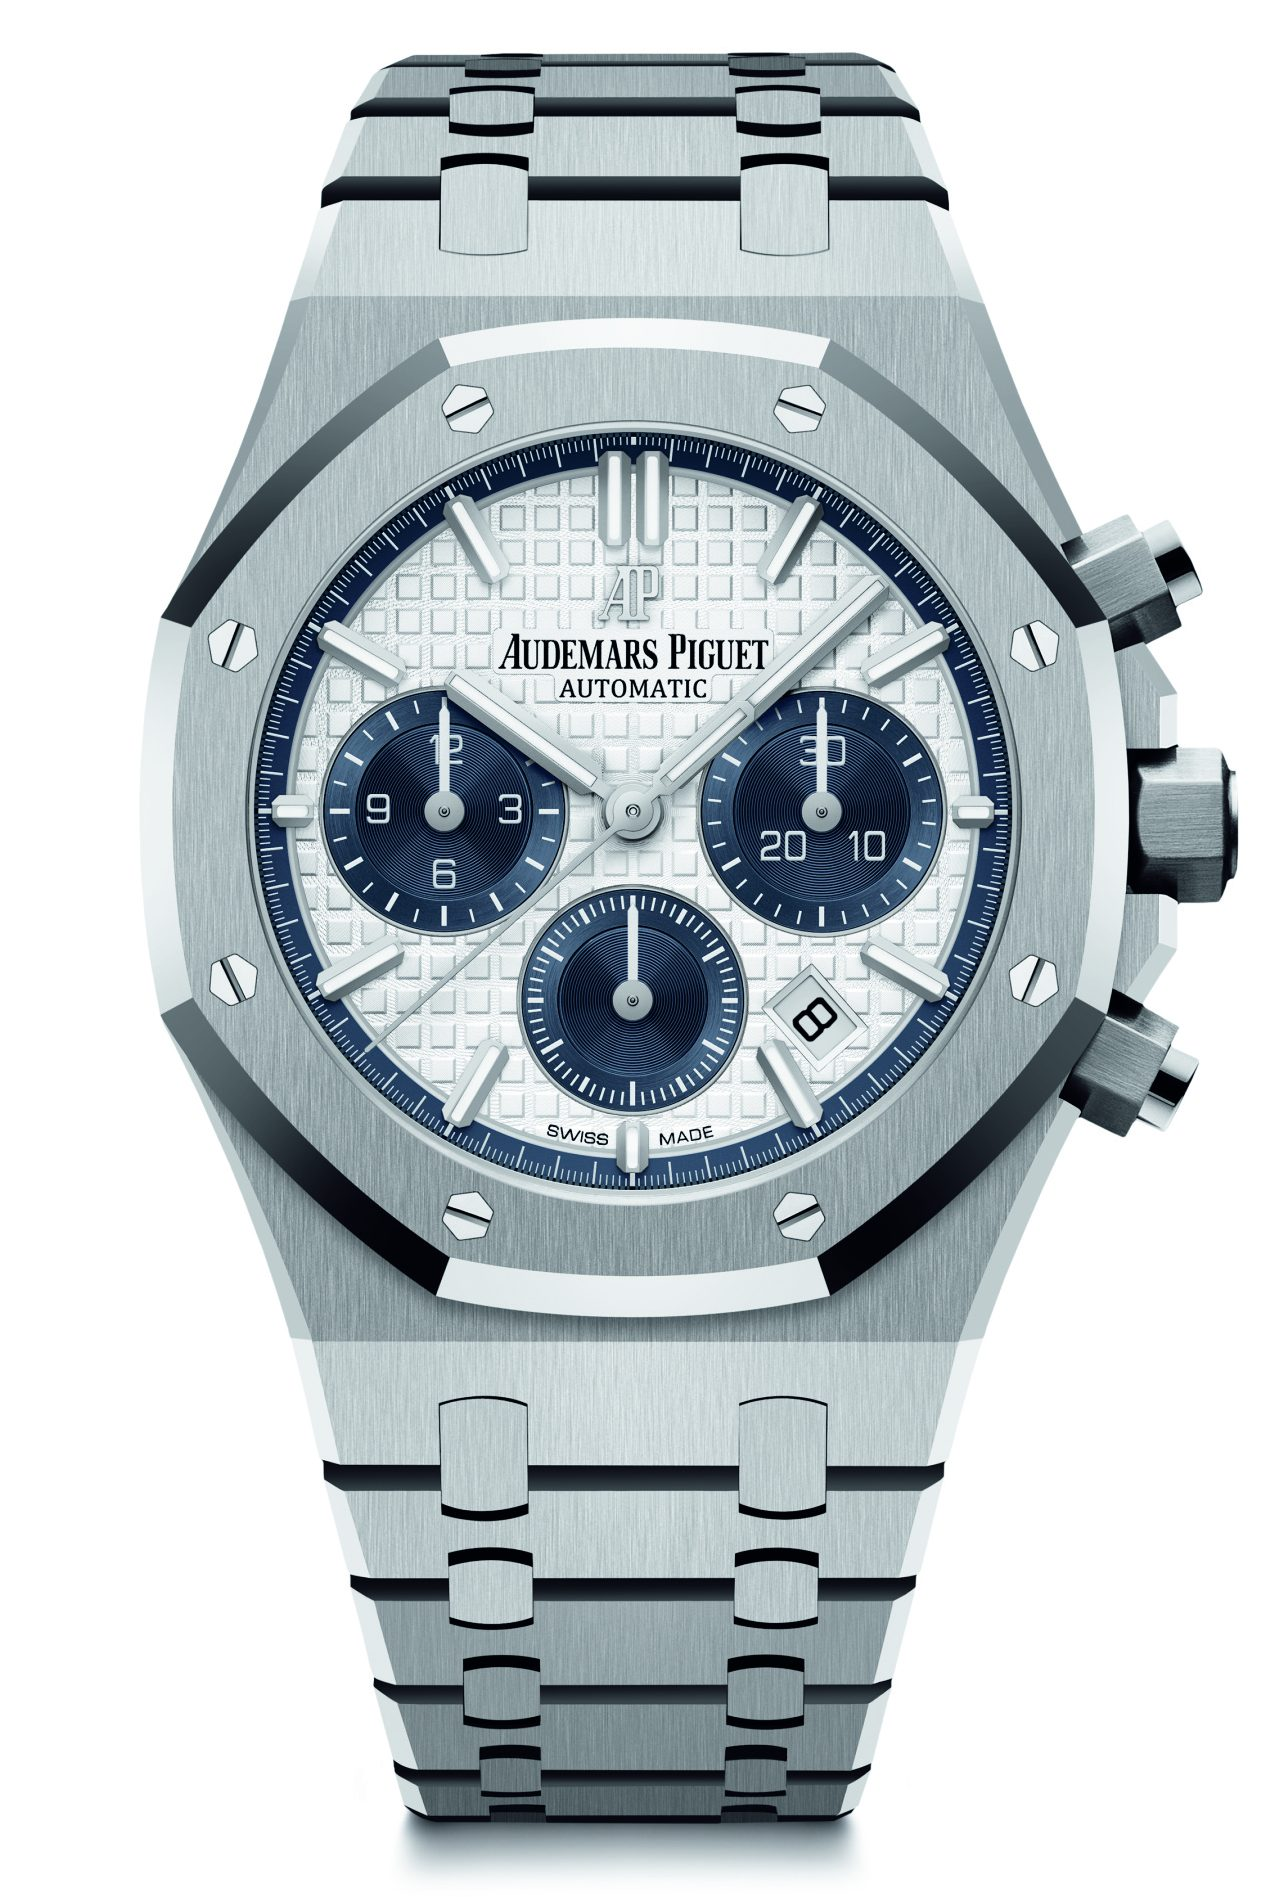 The History of the Audemars Piguet Royal Oak Chronograph